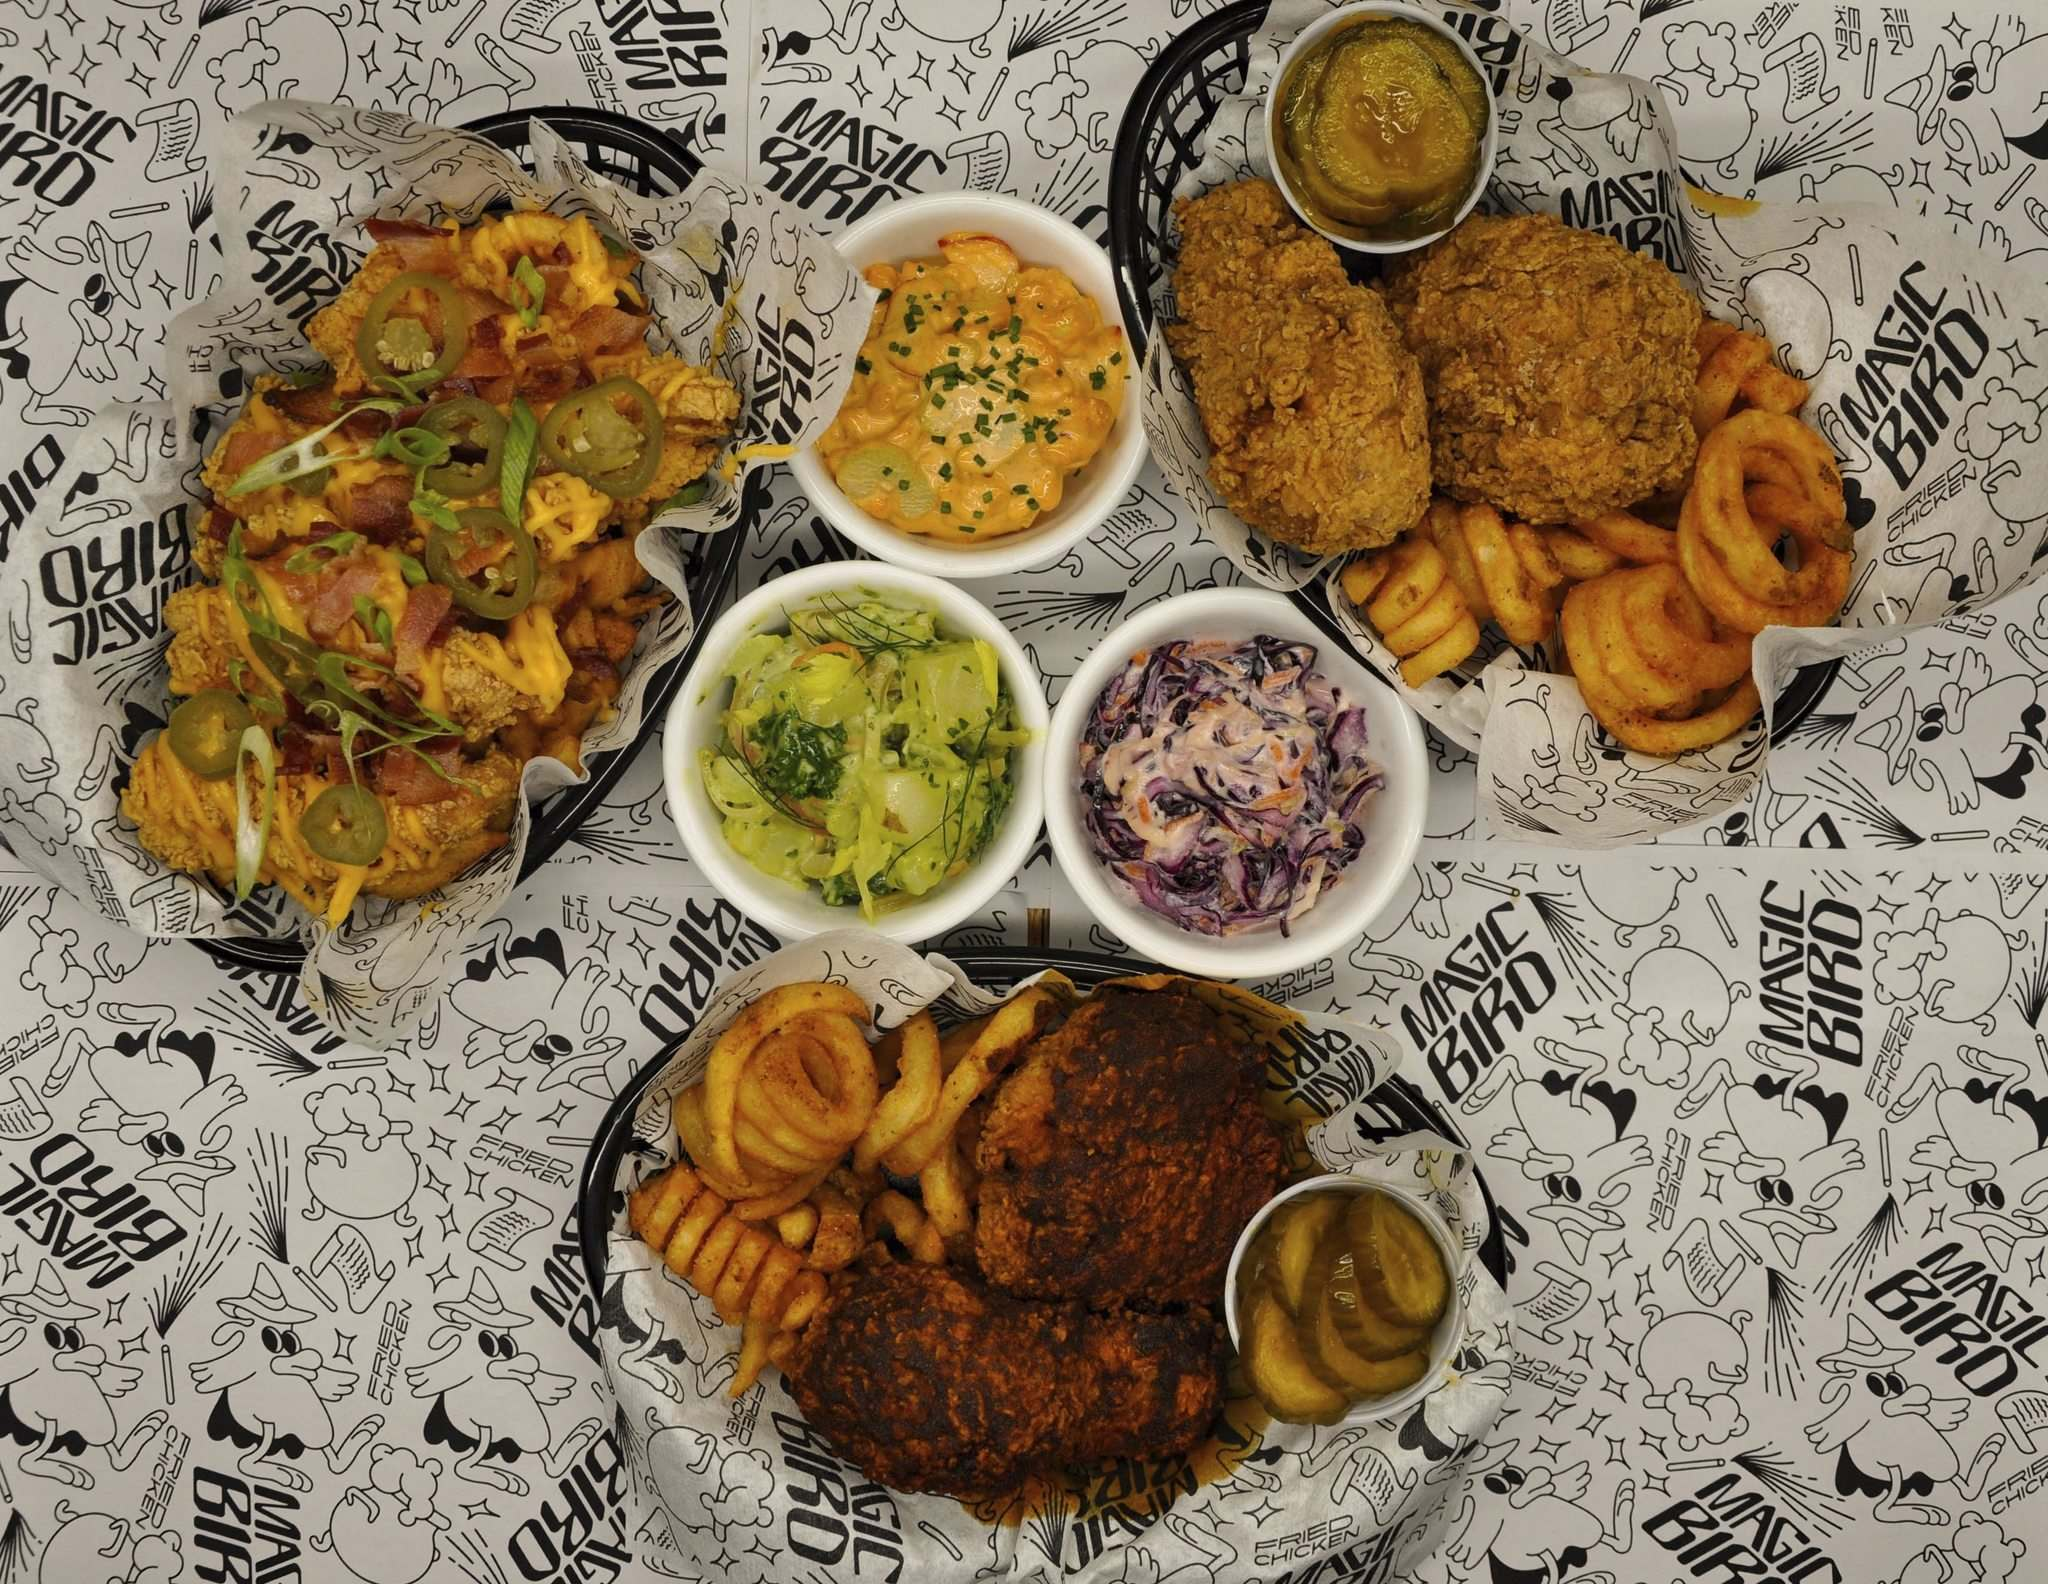 Magic Bird Fried Chicken opens Oct. 31 at the Handsome Daughter. (C. Lucky photos)